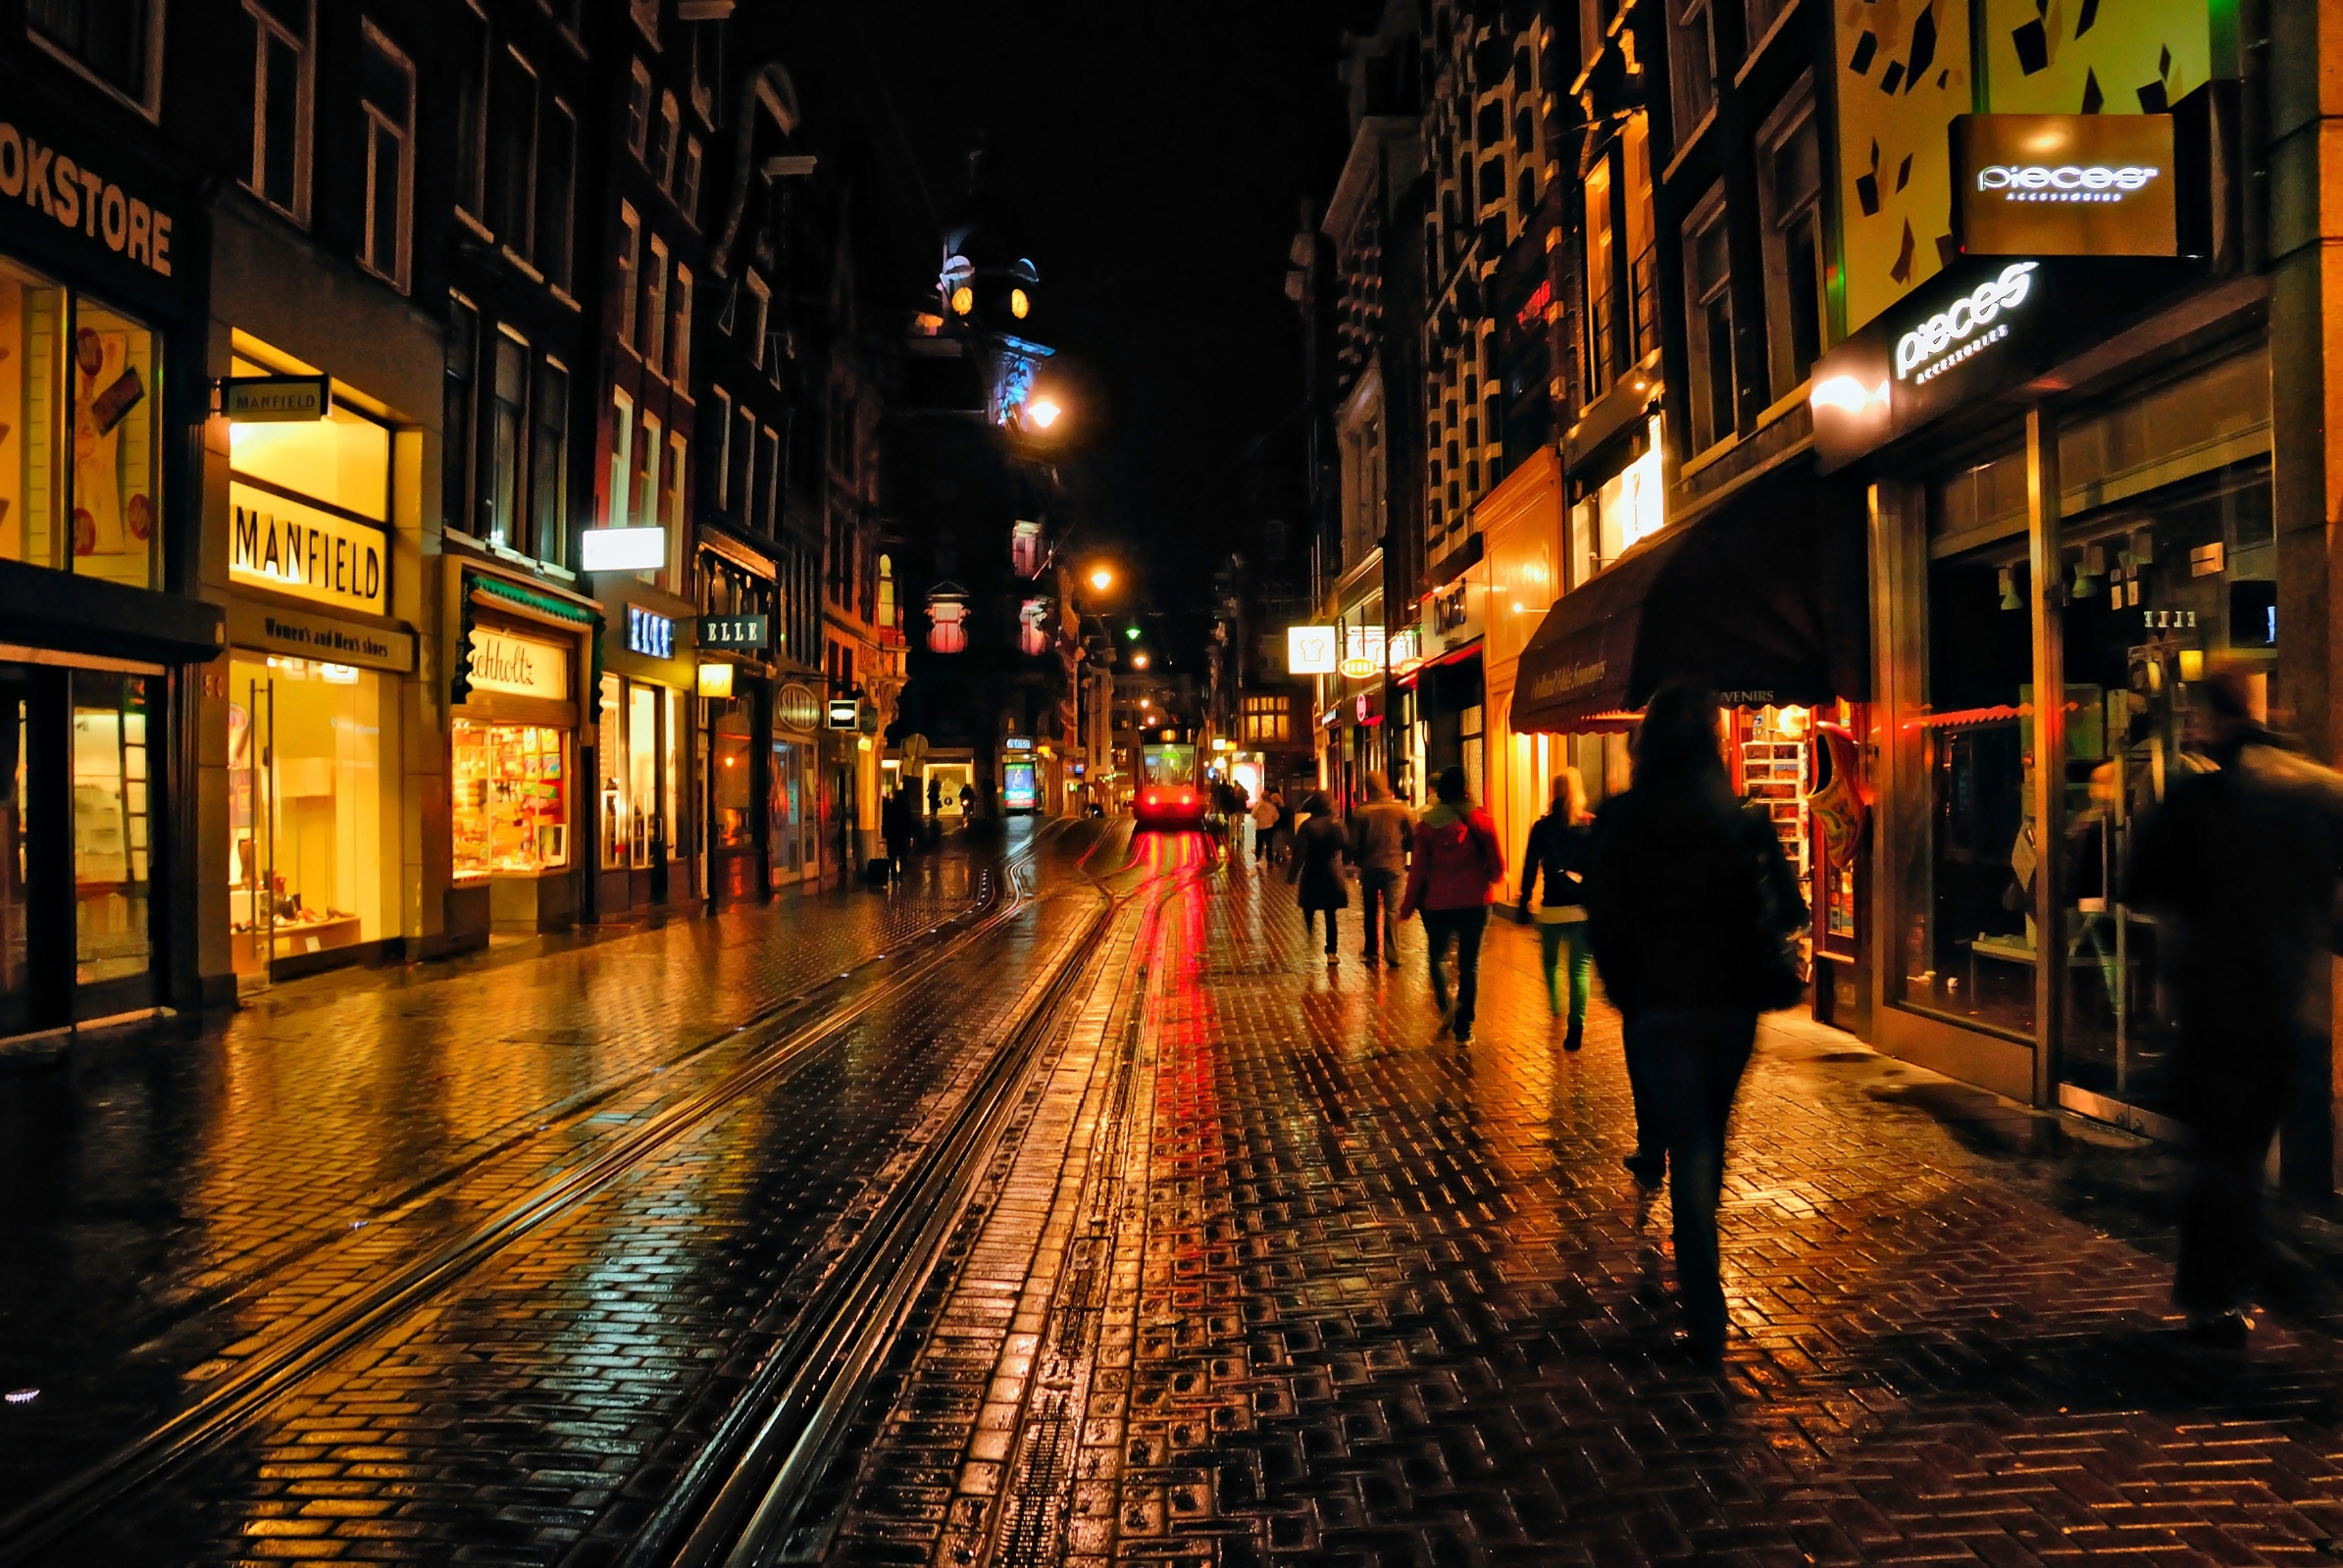 city street night hd wallpapers | street photography | pinterest